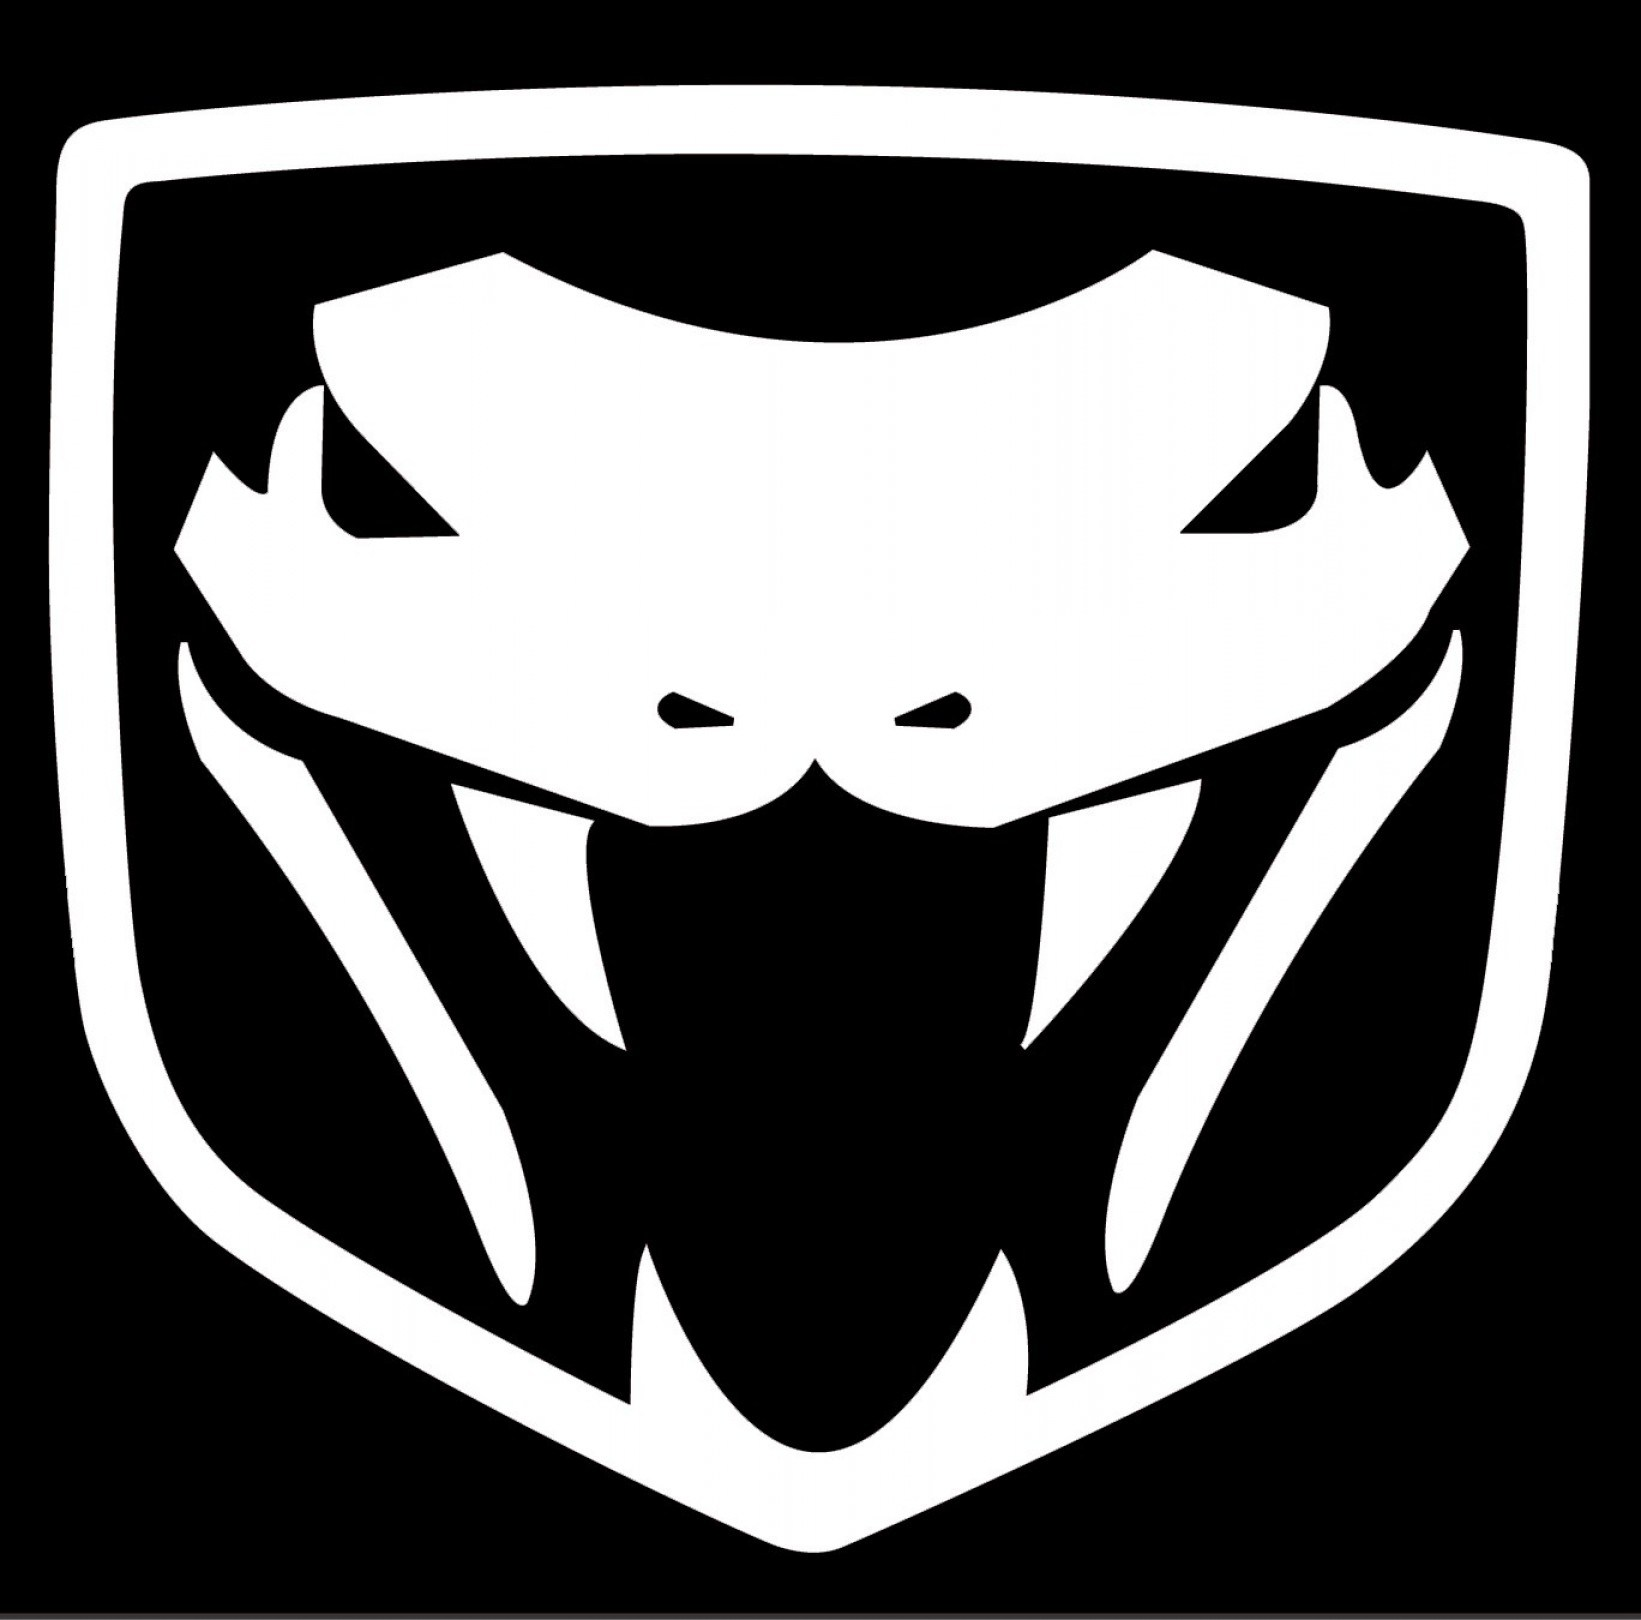 1641x1620 Dodge Ram Logo Vector Eps Can The Liners Png Fabricate Viper For